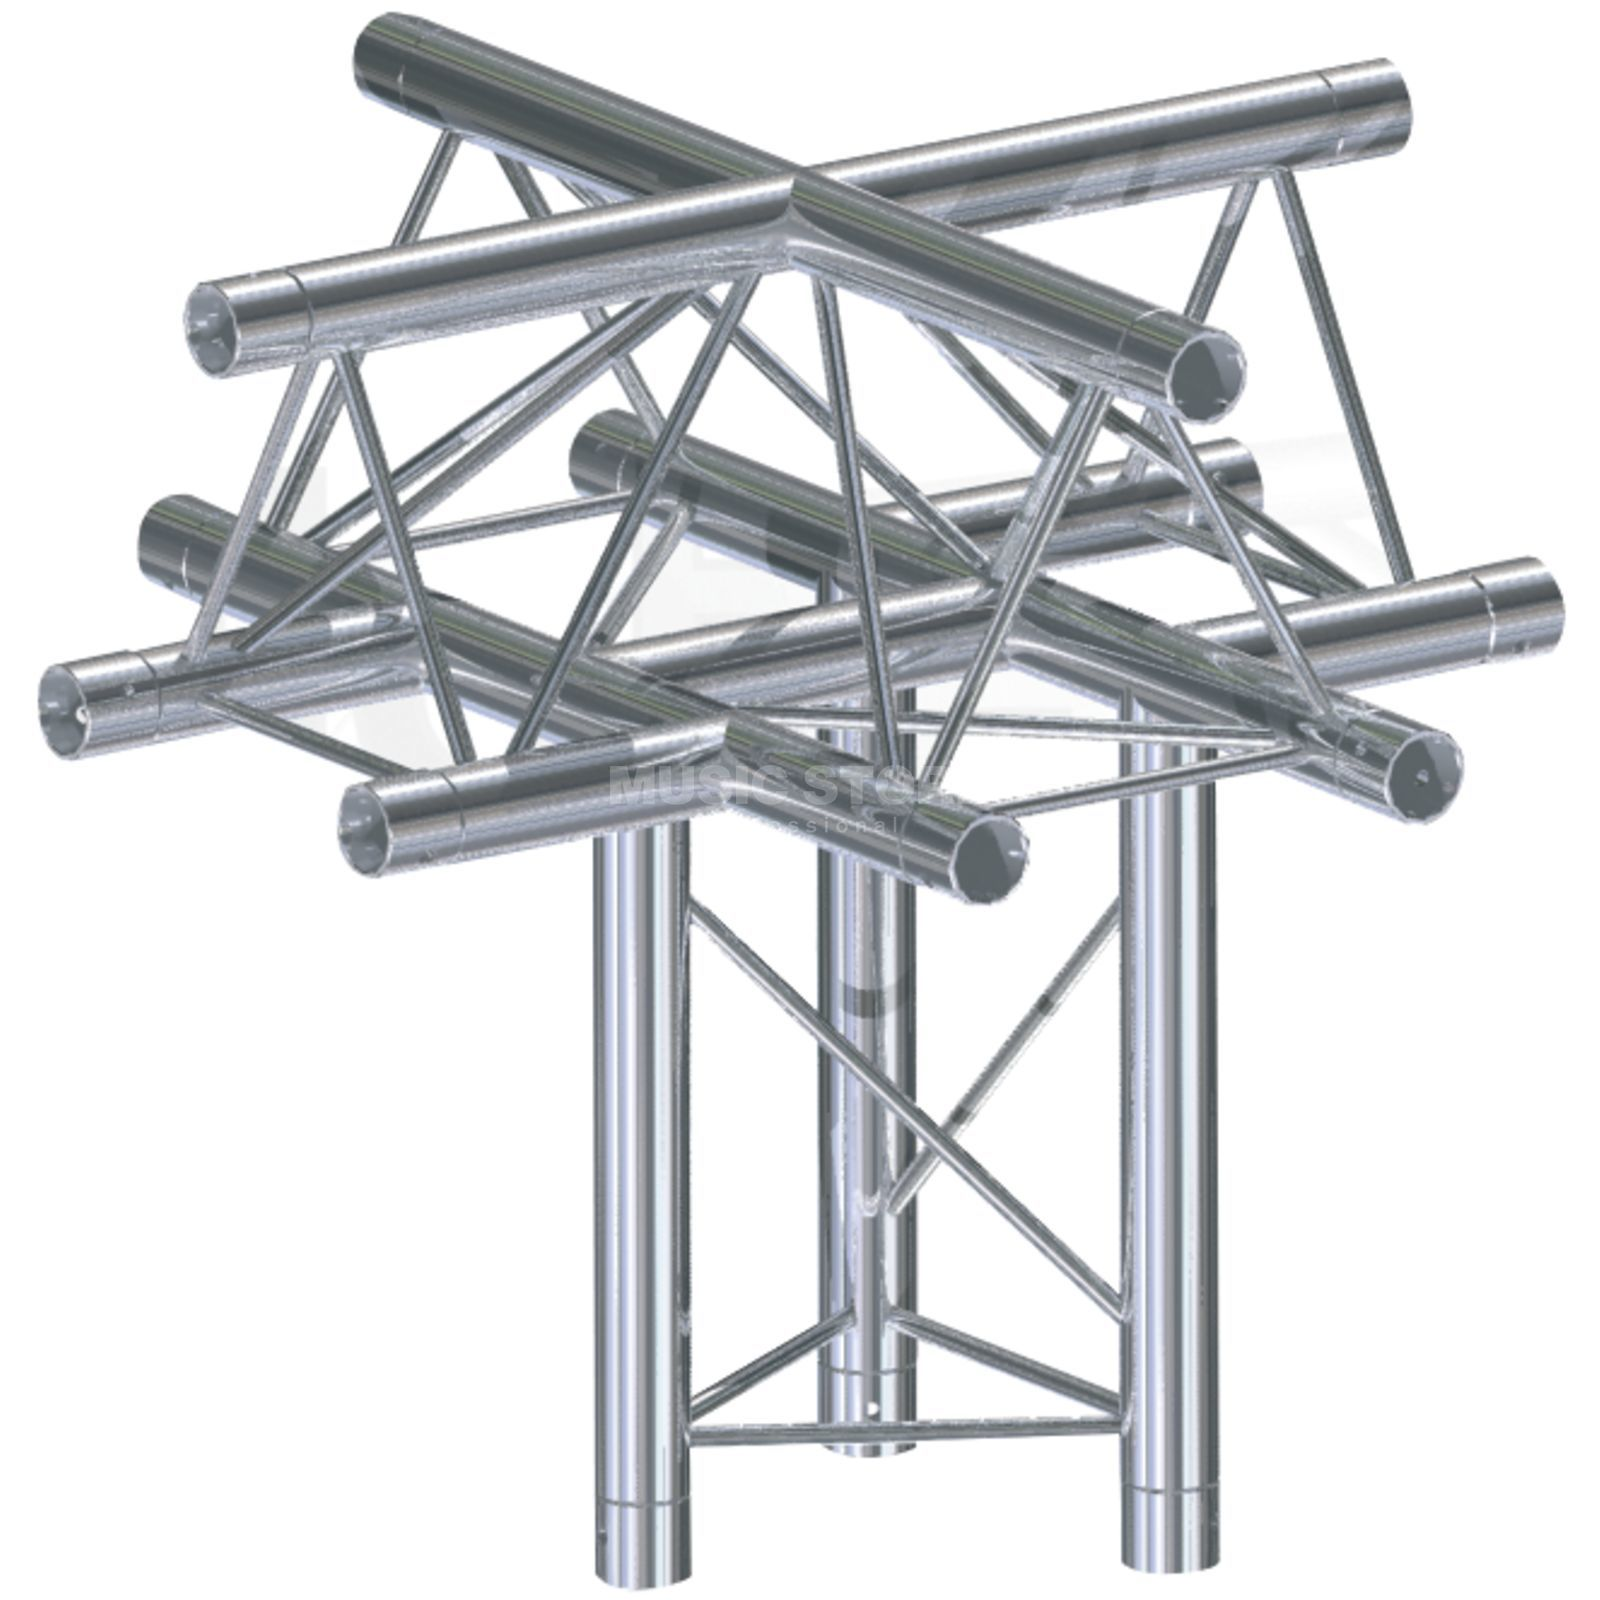 Global Truss F33, XU-X Piece C52 3-Point, 5-Way Cross Produktbillede